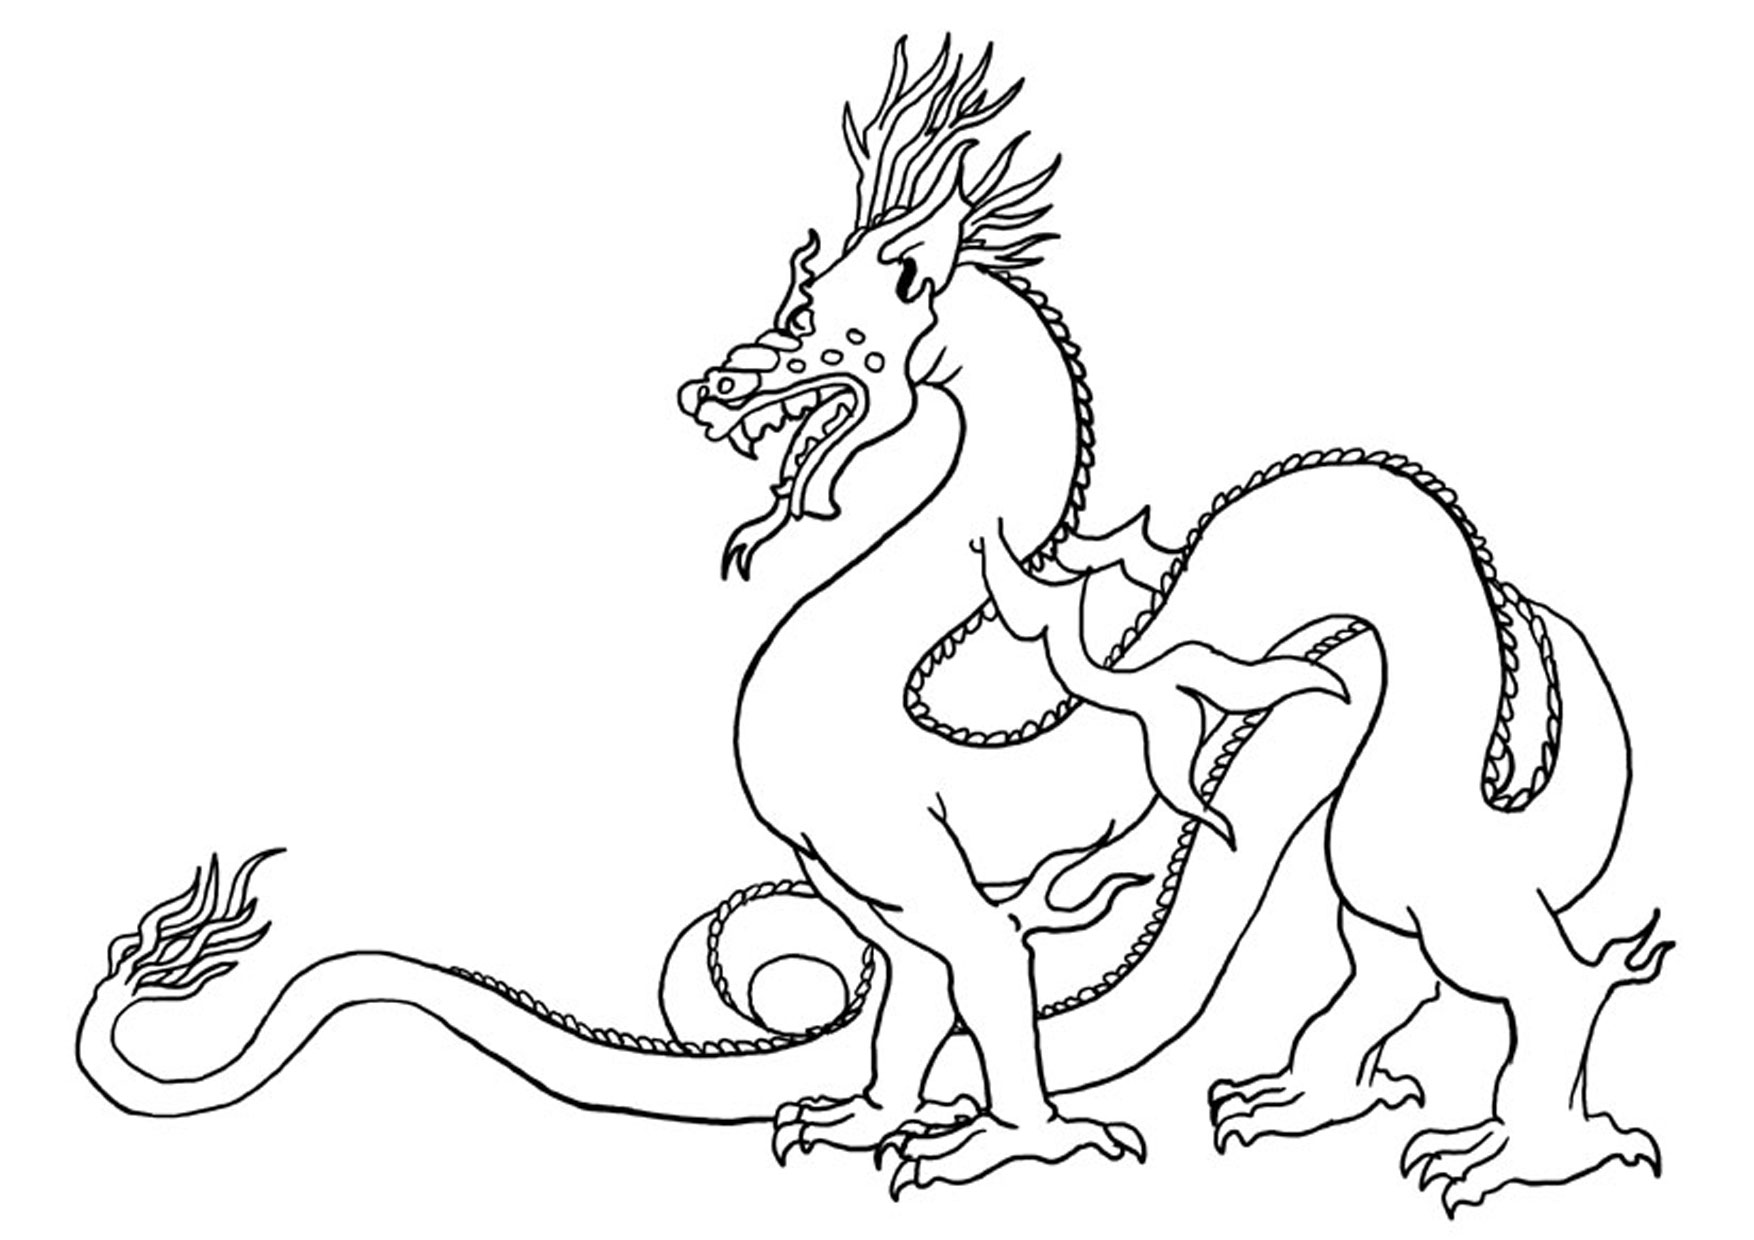 Easy Dragon Drawings Black And White - ClipArt Best